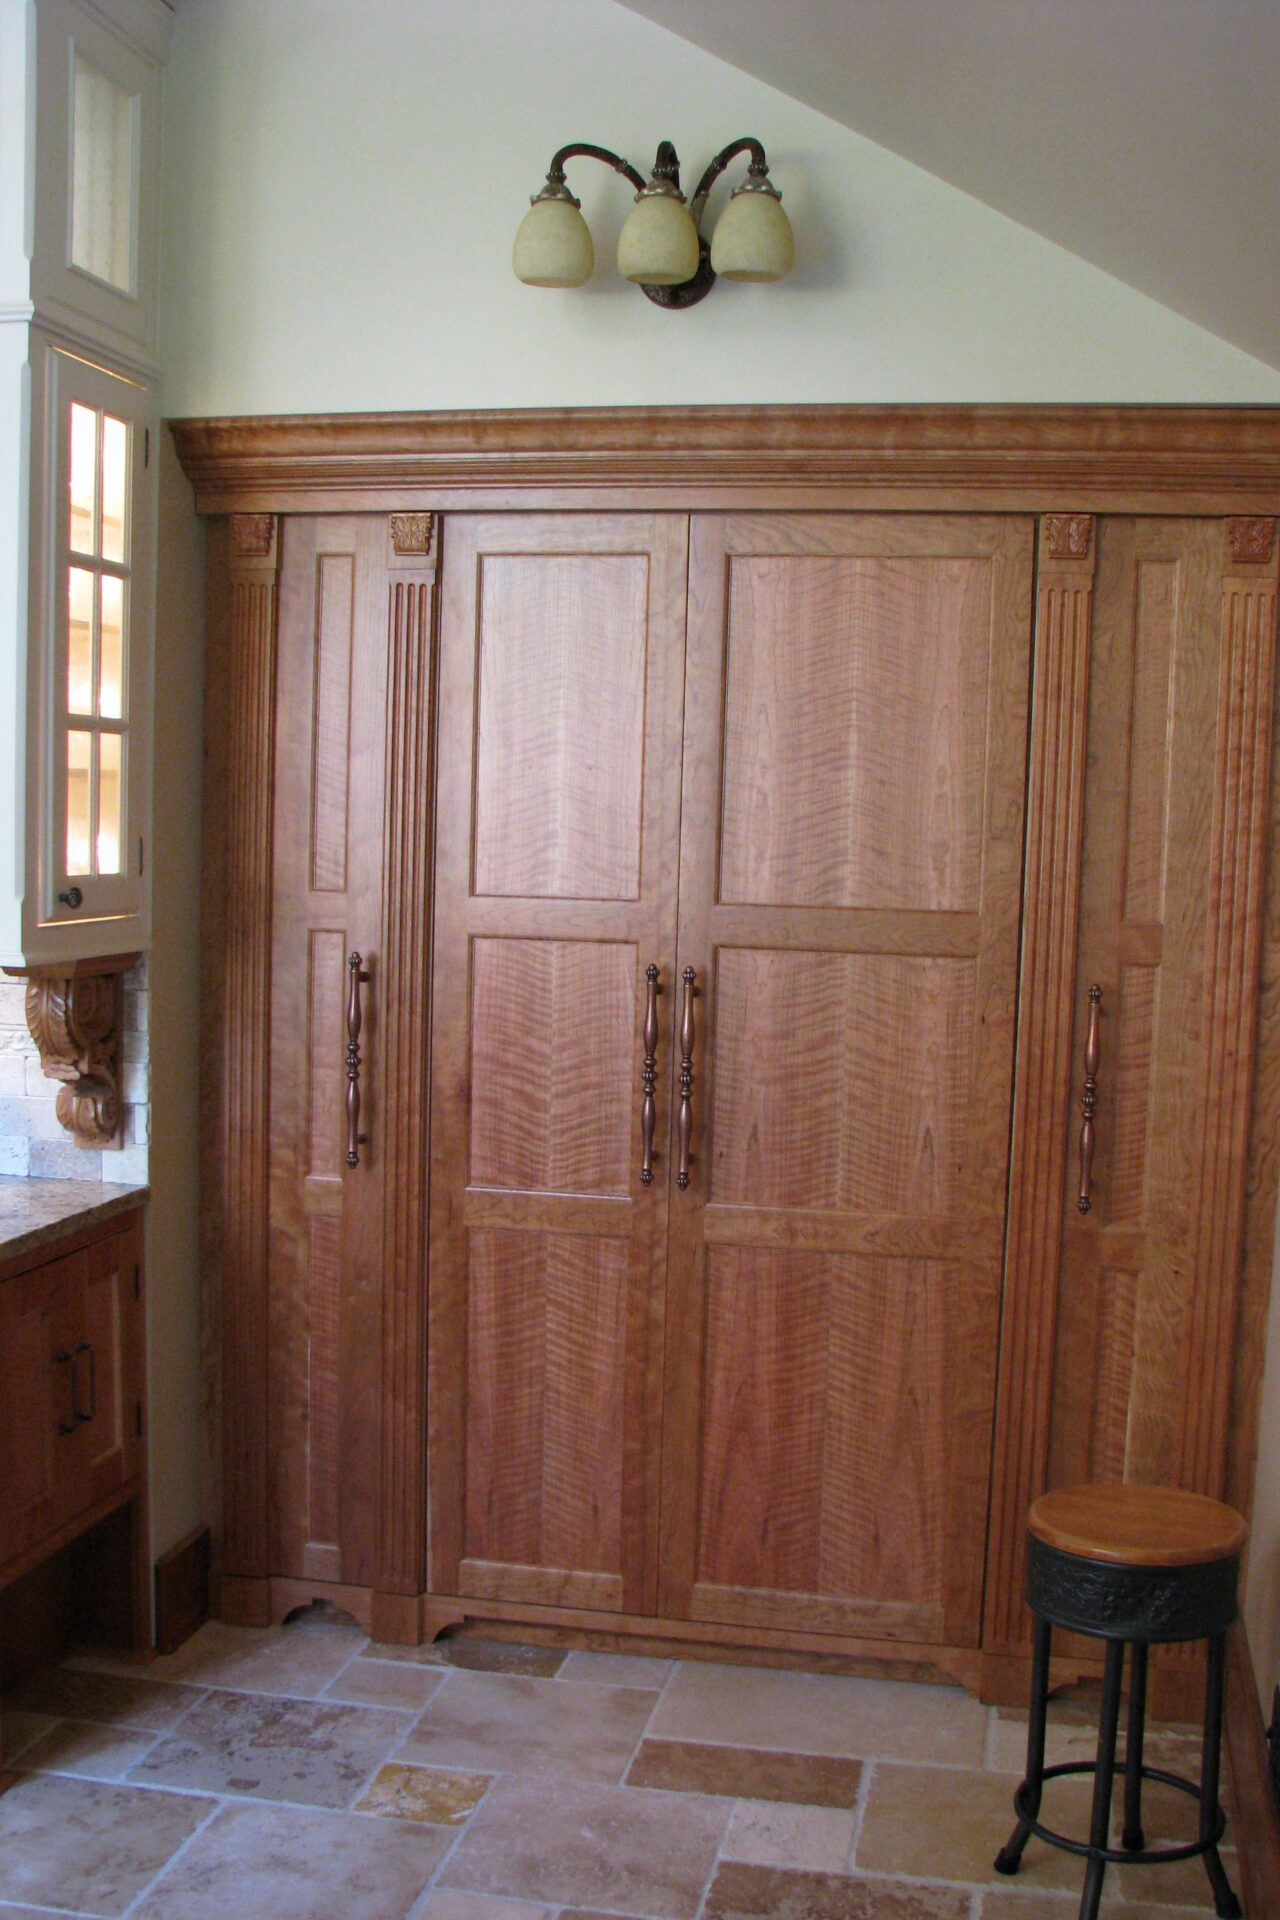 Hardwood interior doors premier custom millwork surfaces inc hardwood interior doors planetlyrics Images